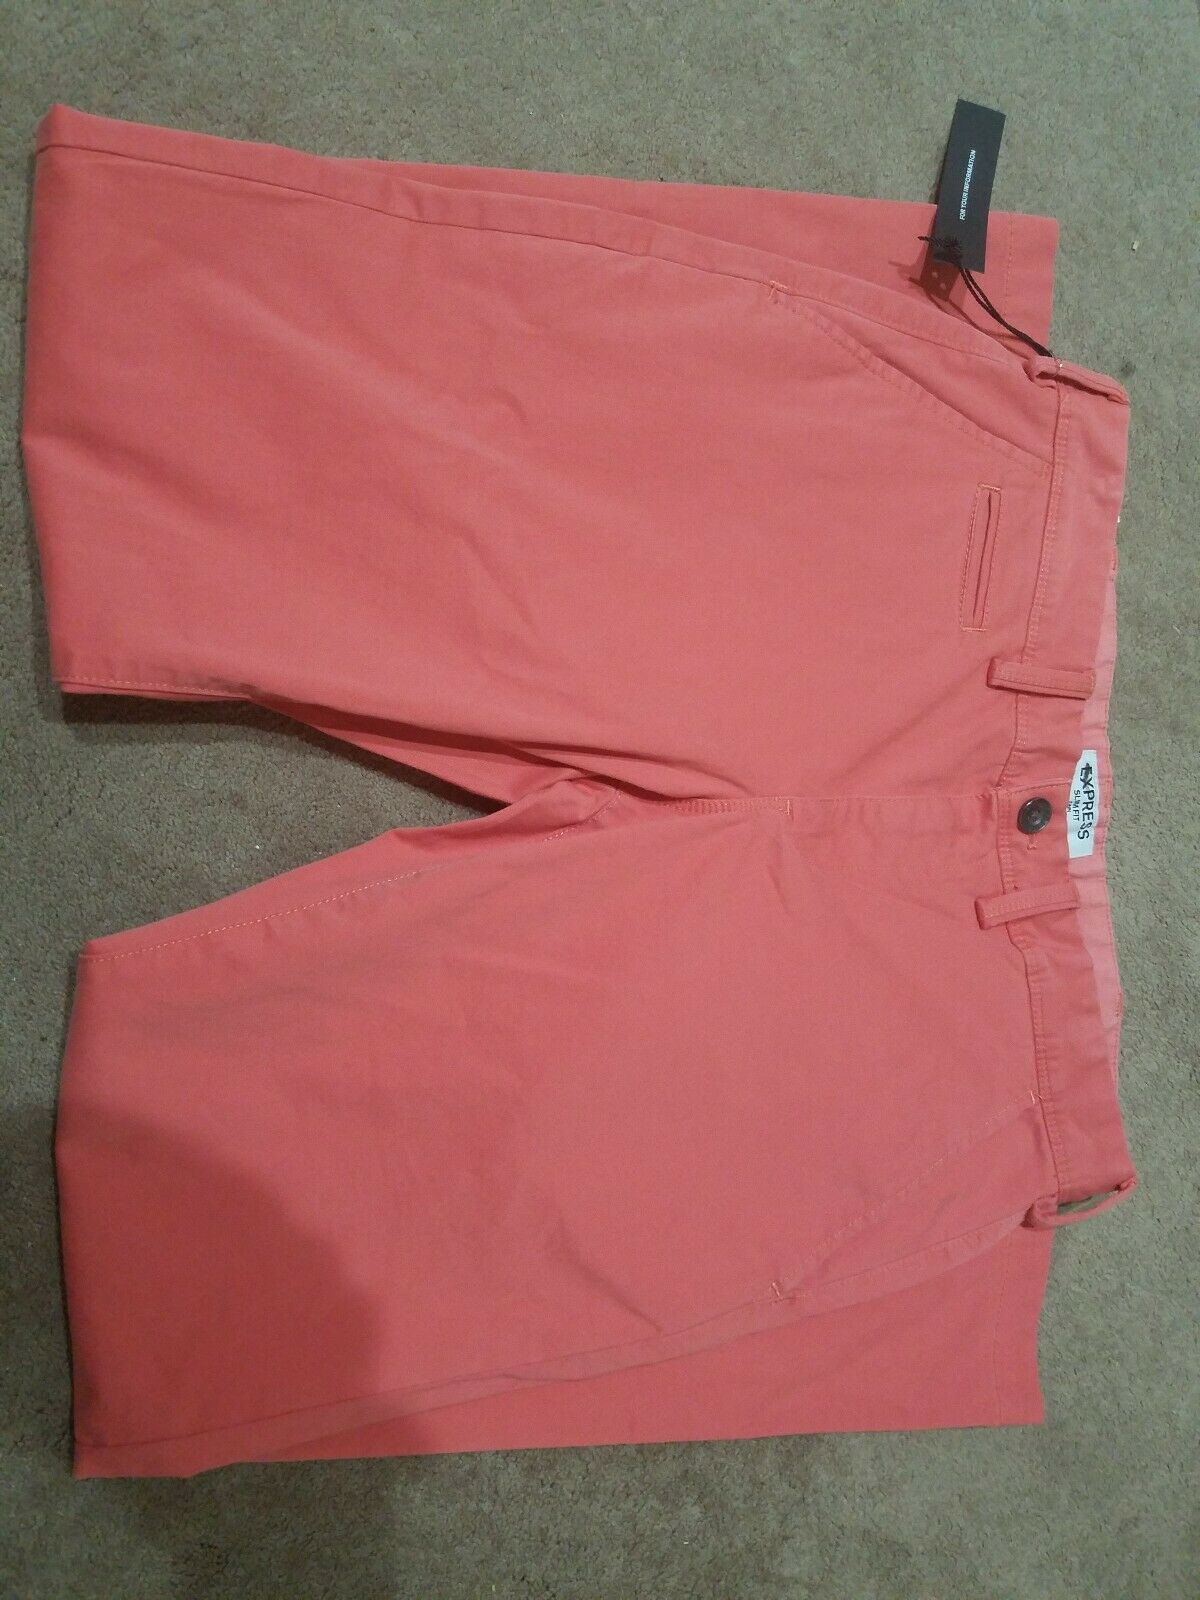 Nwt Mens Express slim fit pants 31 30 light orange coarl peach Fin